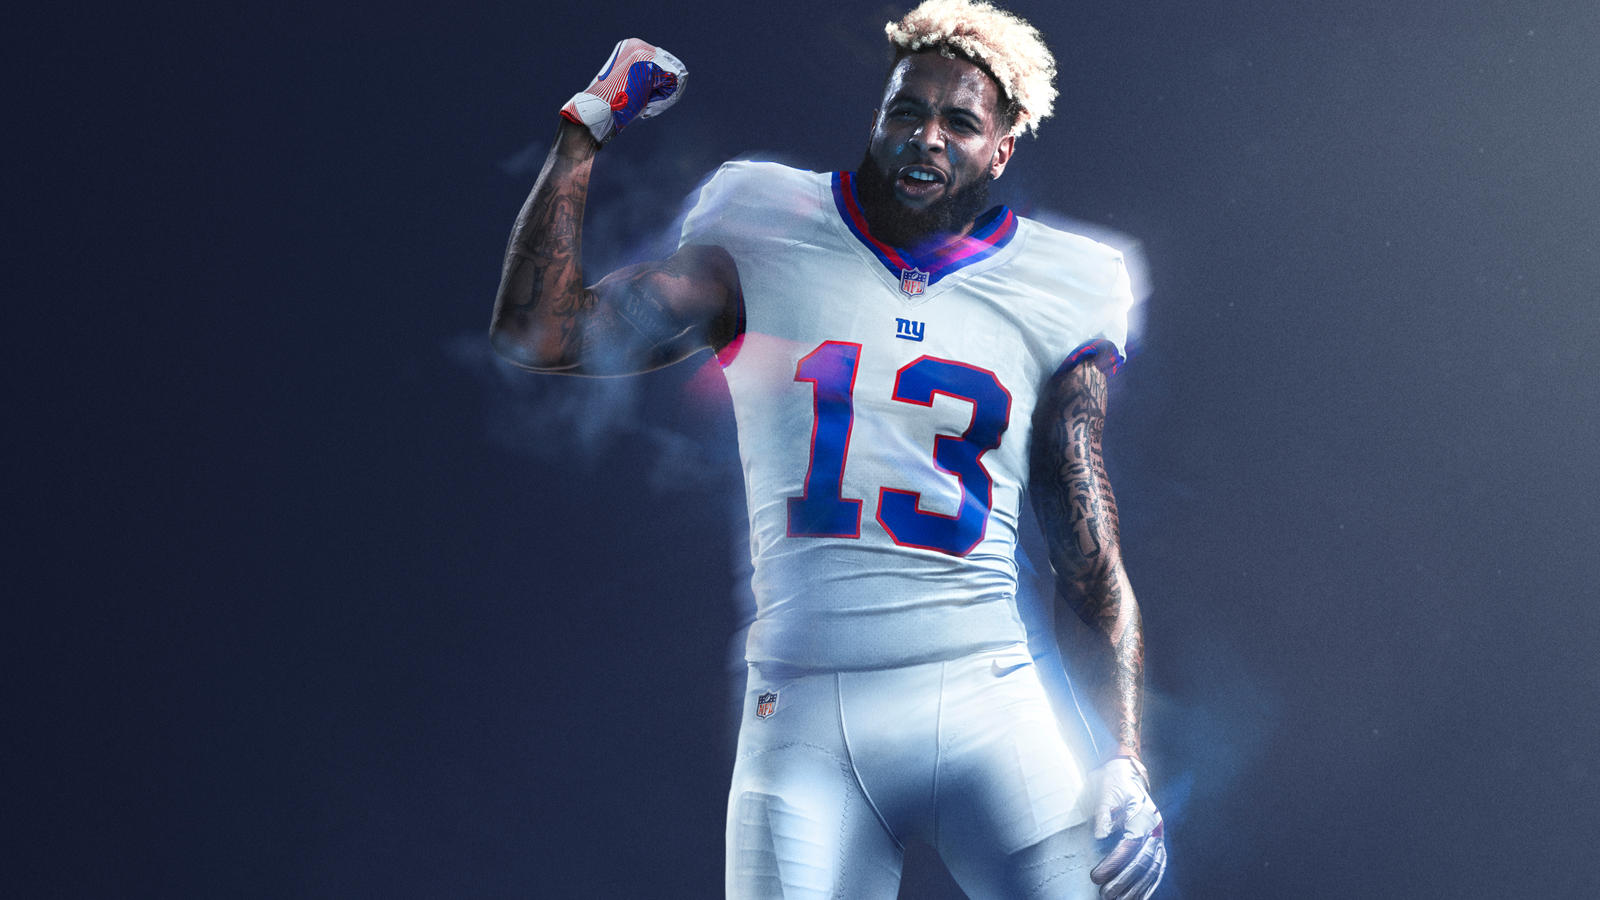 buy nfl color rush jerseys